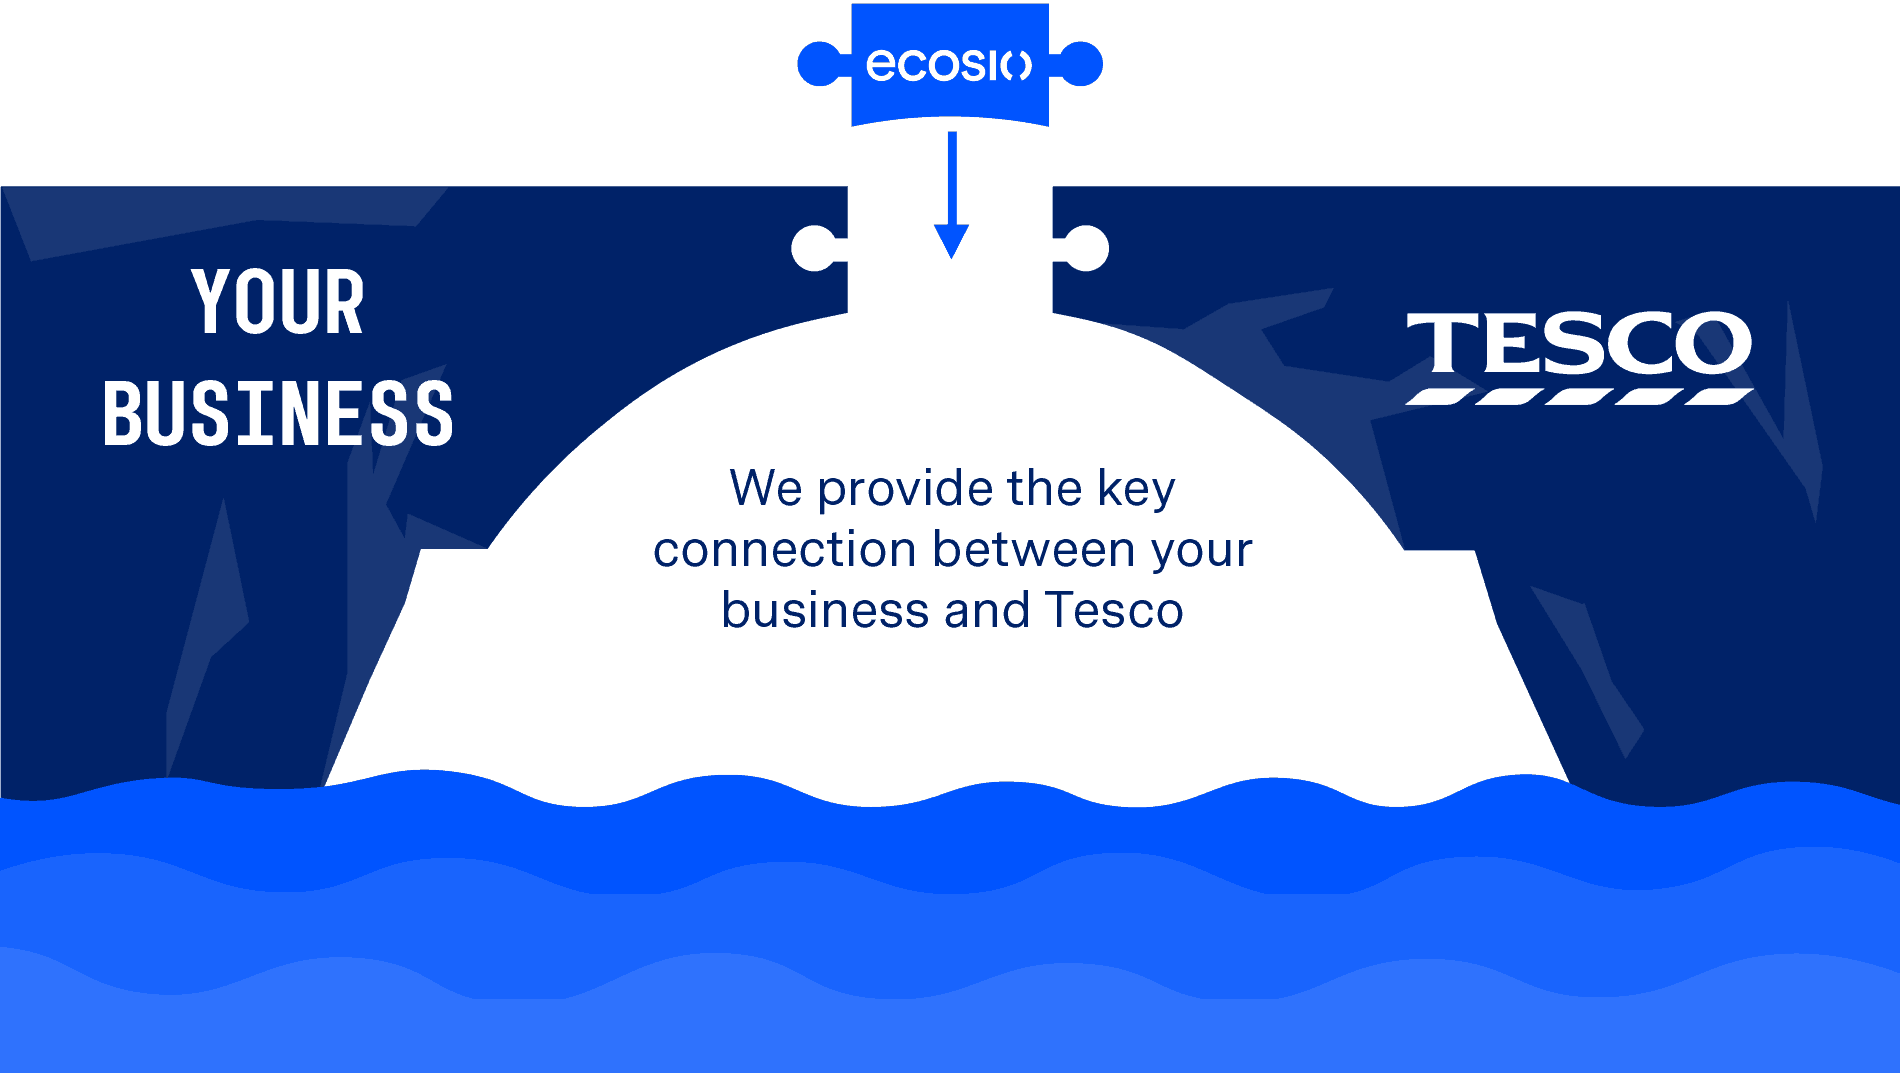 Tesco EDI Partner Connection Bridge